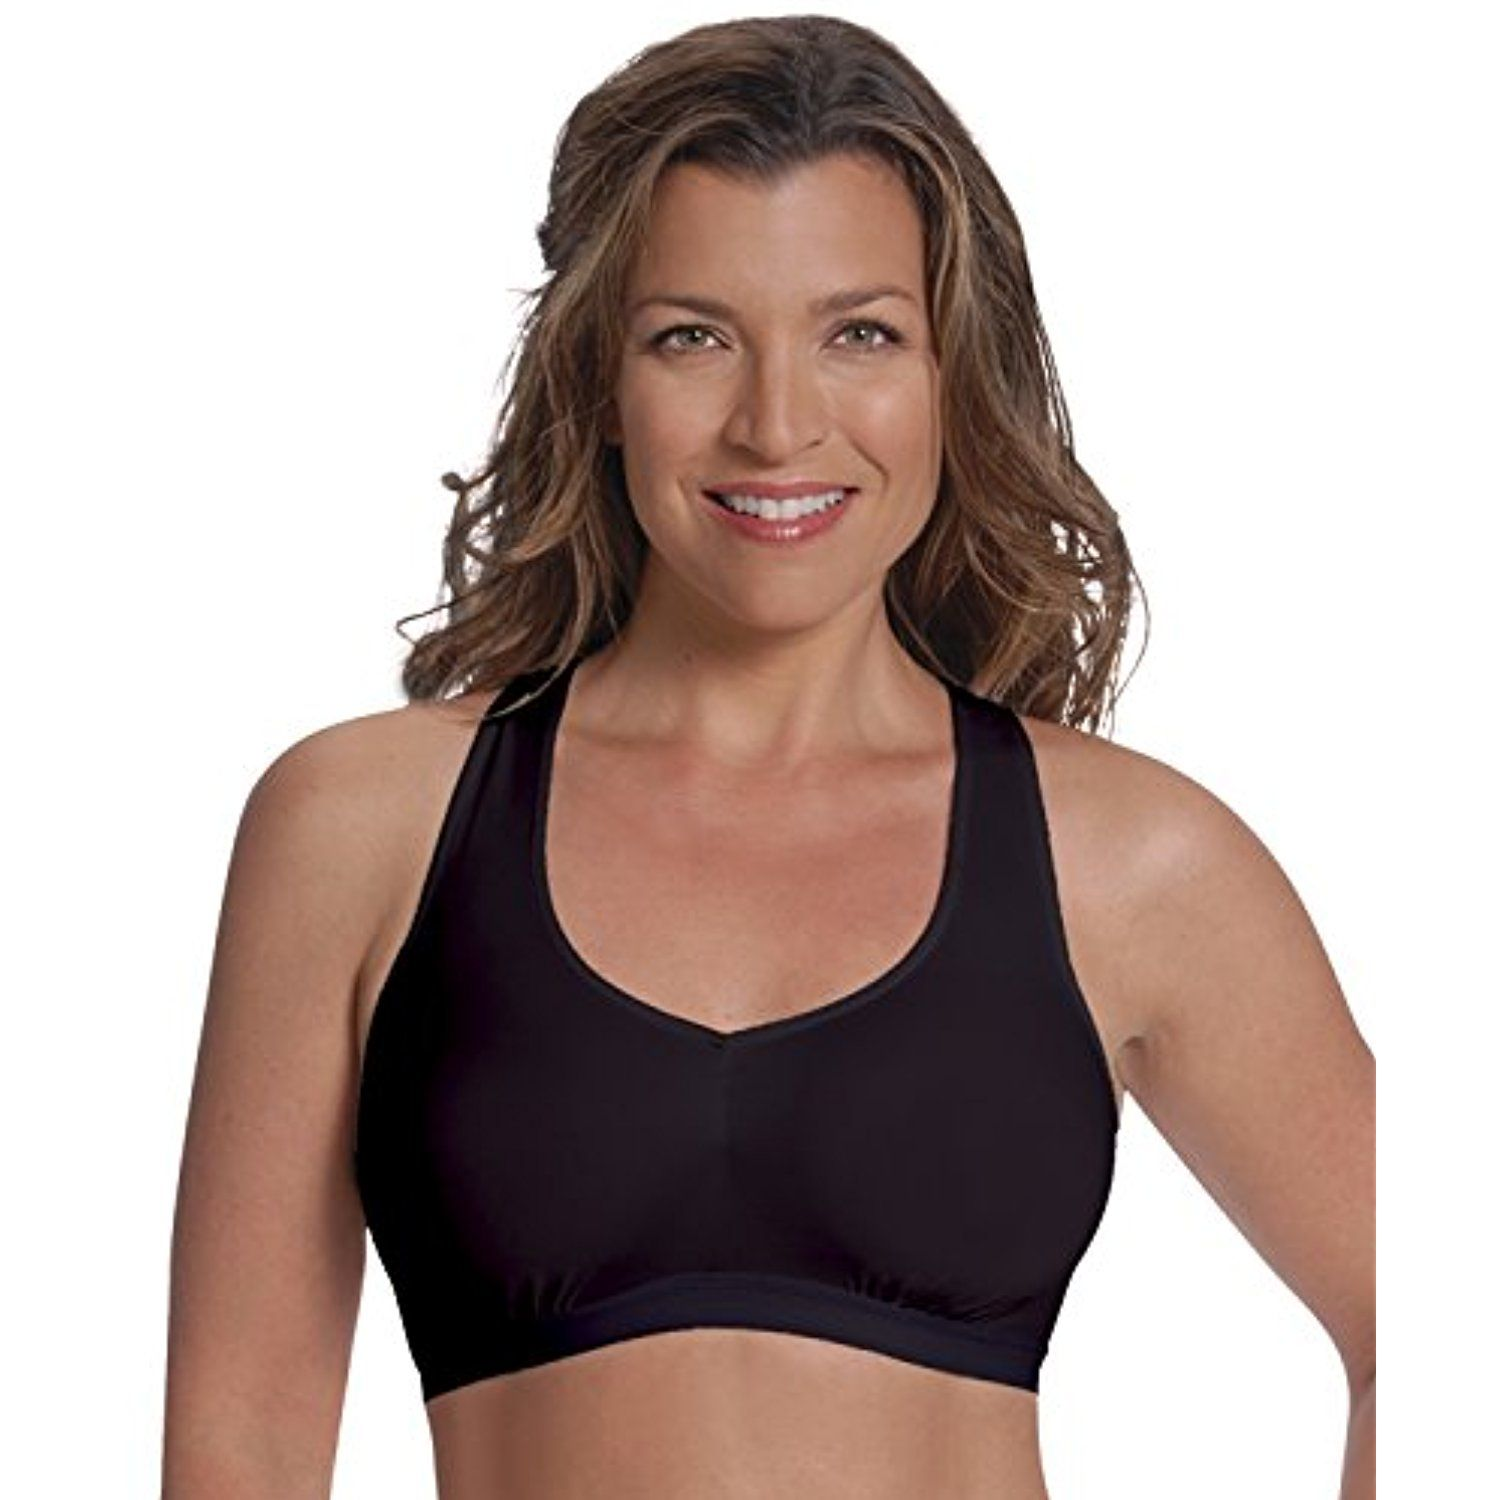 f63db22c87 Carole Martin Women s Active Comfort Bra -- You can get more details by  clicking on the image. (This is an affiliate link)  SportsBras